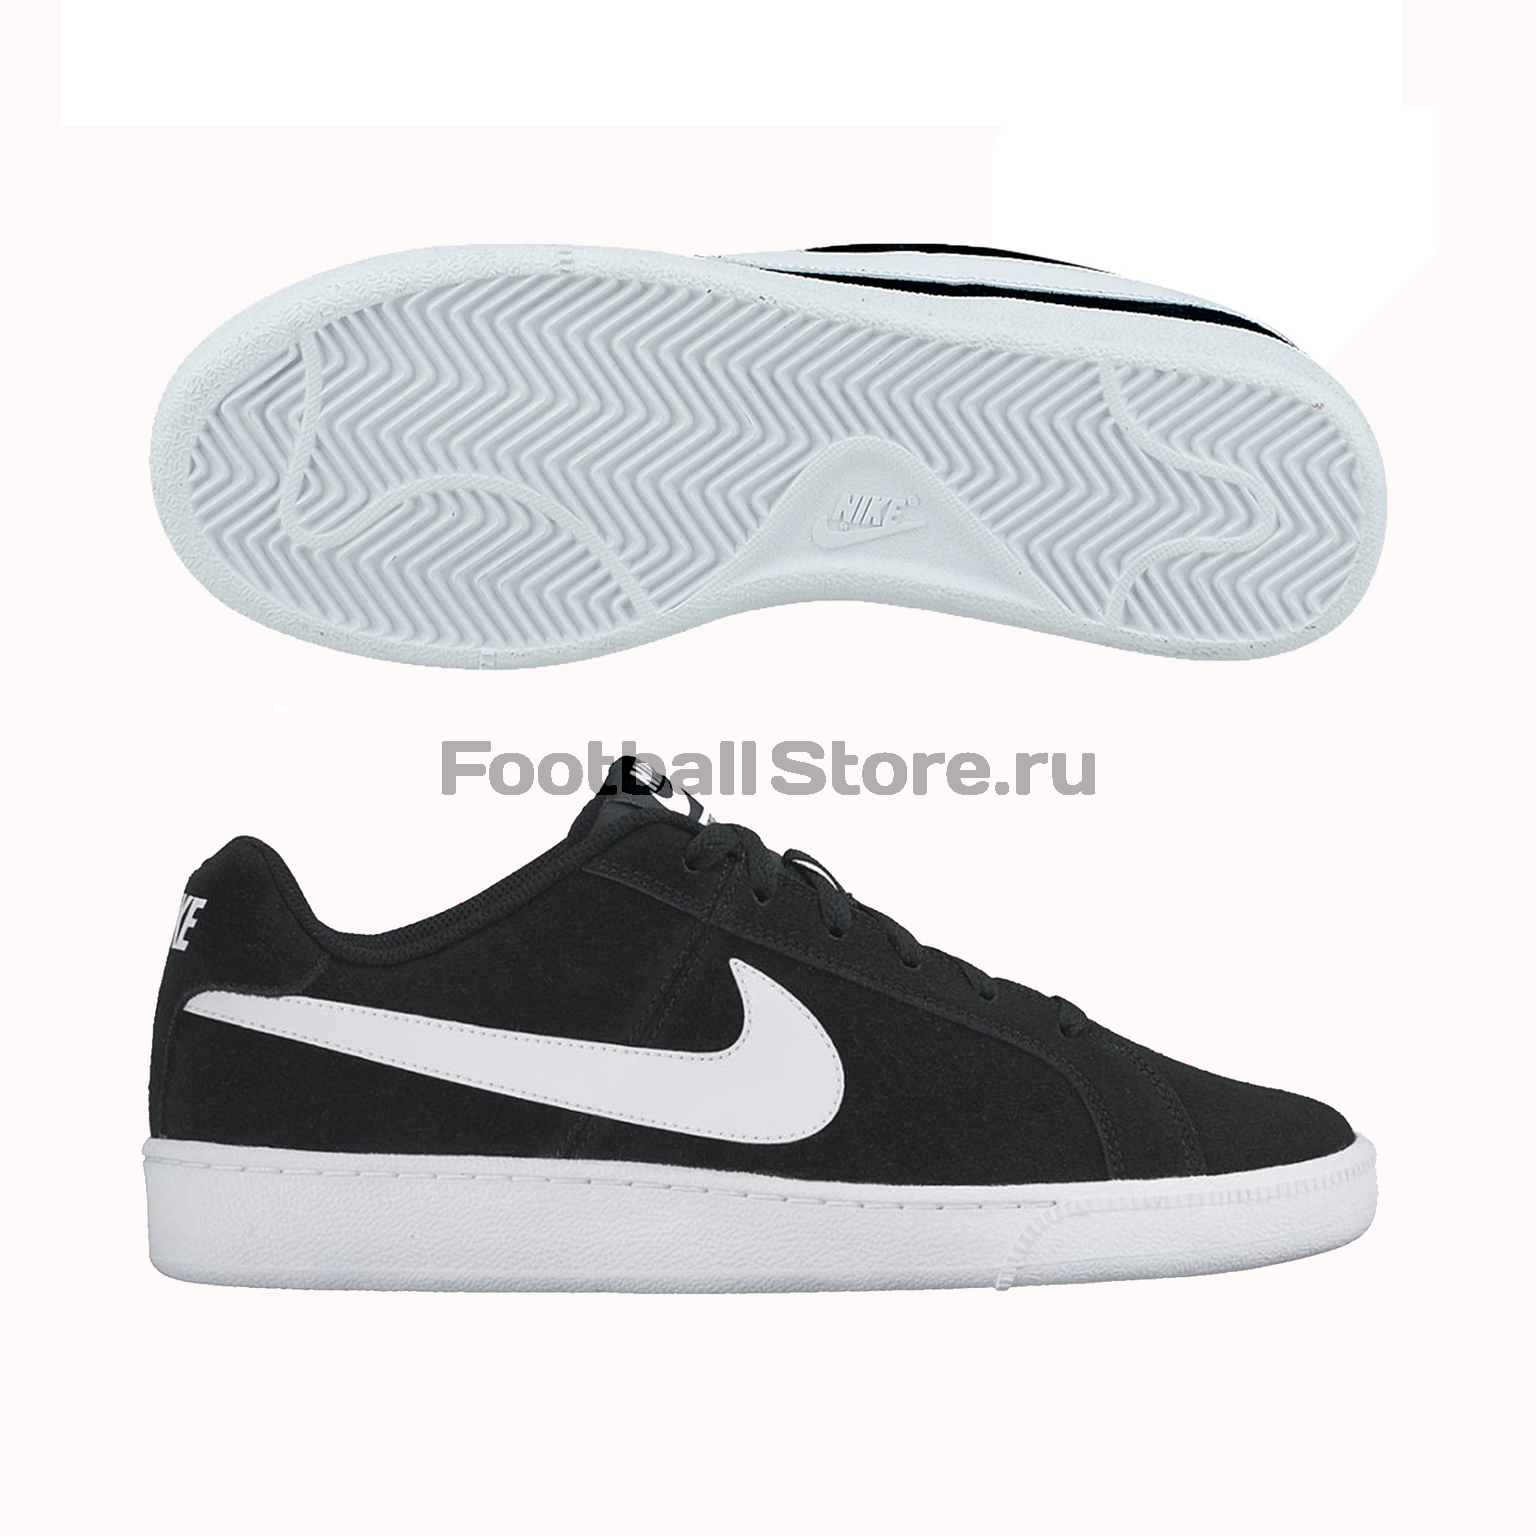 Кроссовки Nike Court Royale Suede 819802-011